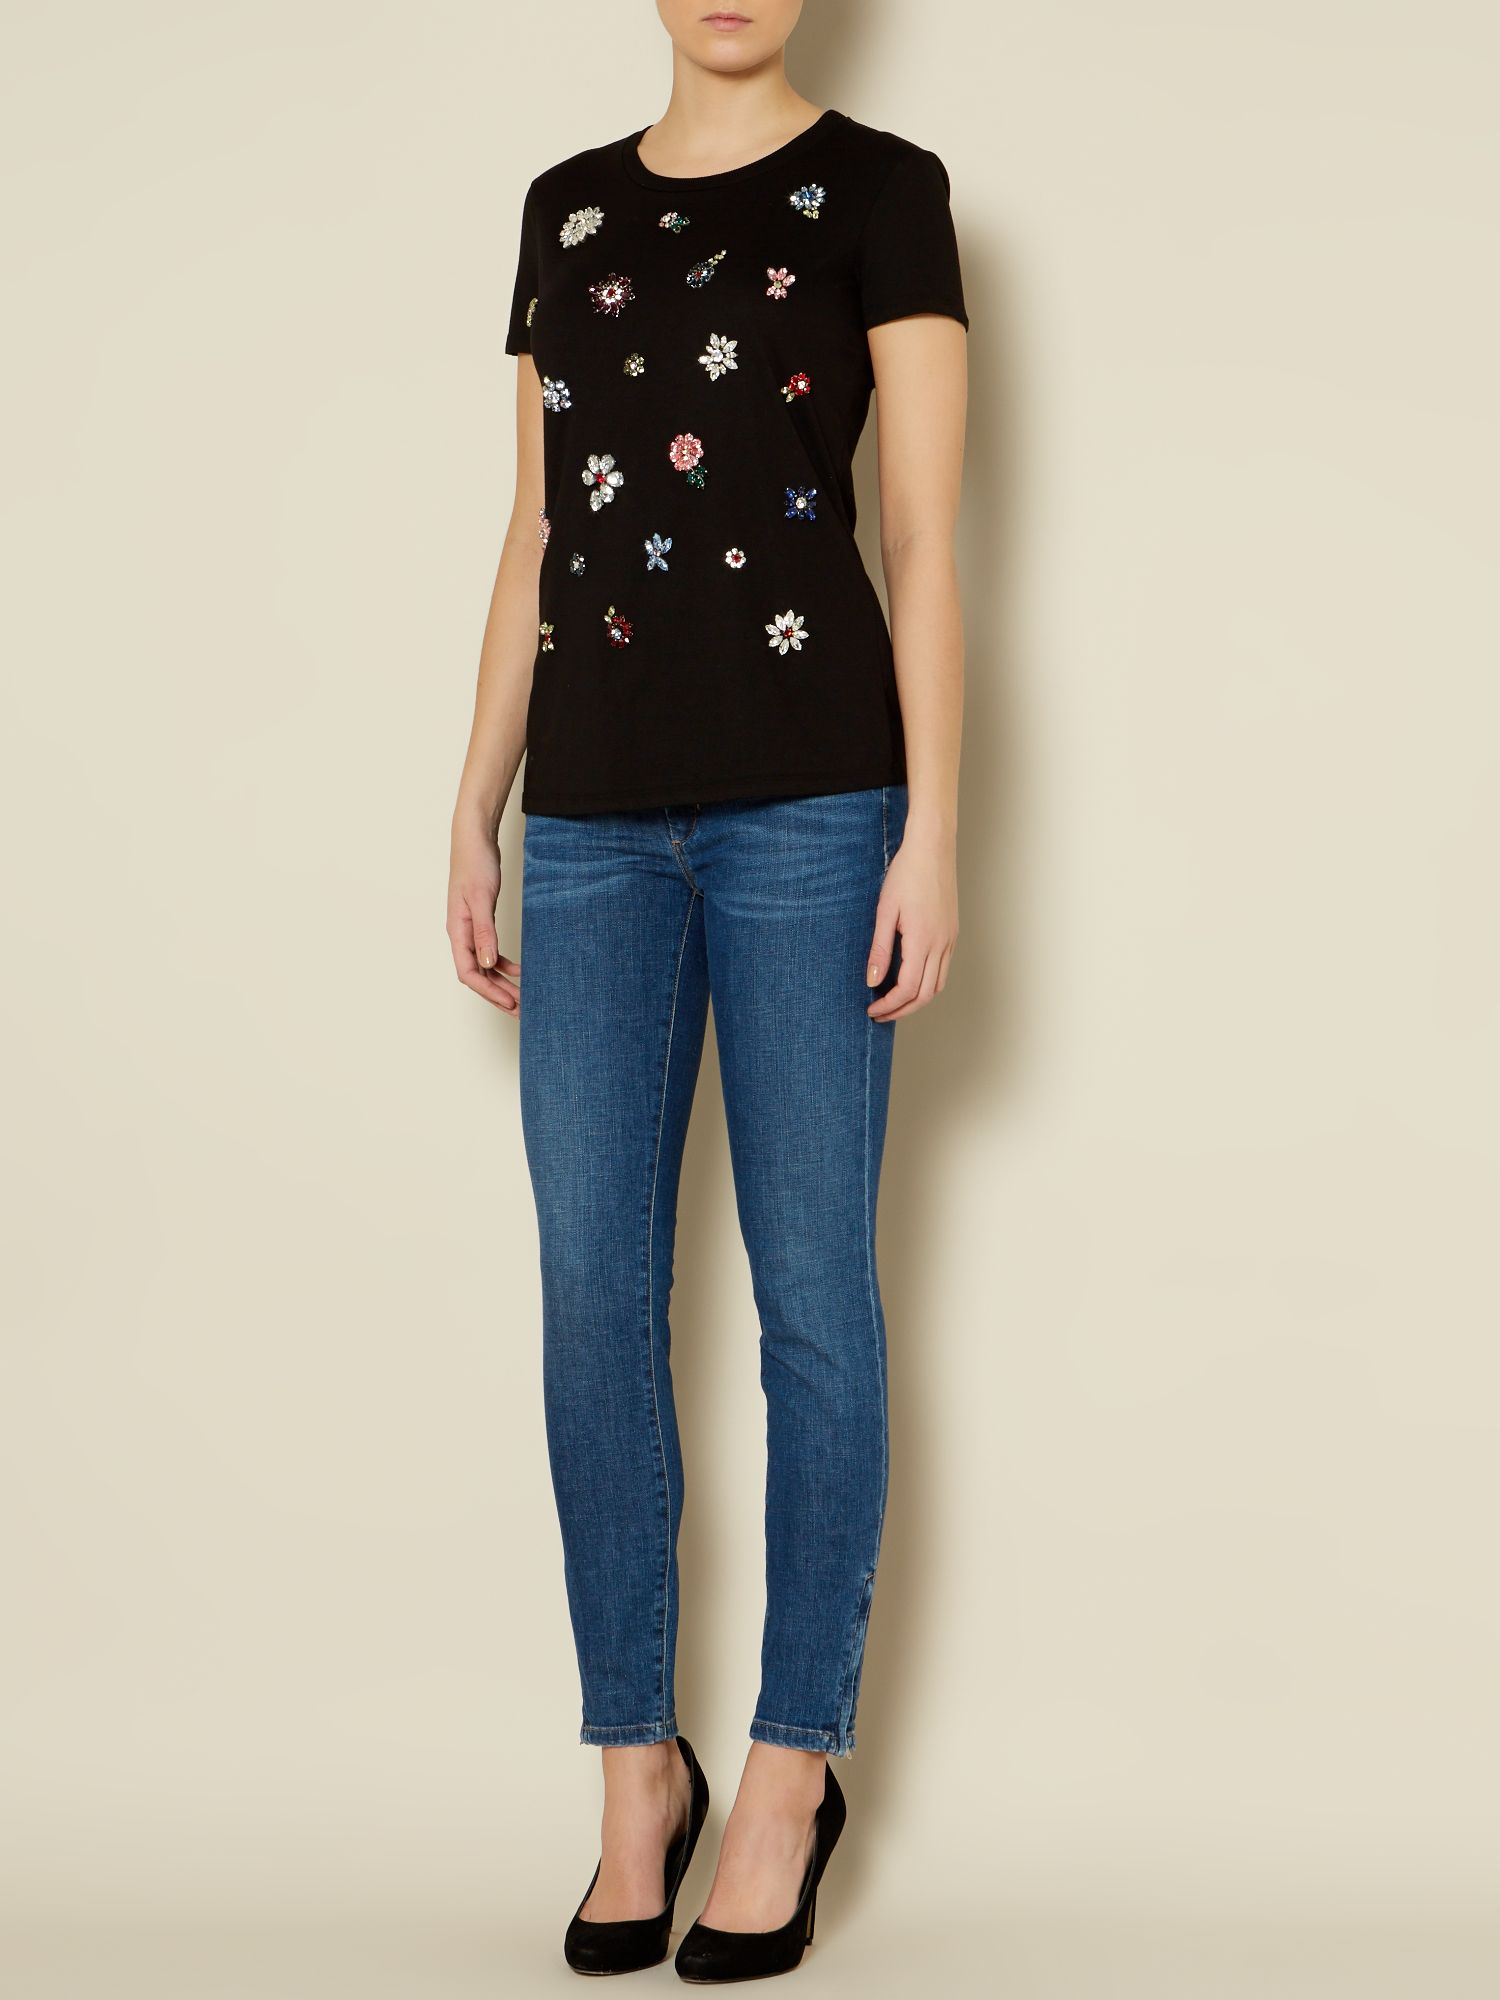 Canto Short sleeve crystal embellished tee